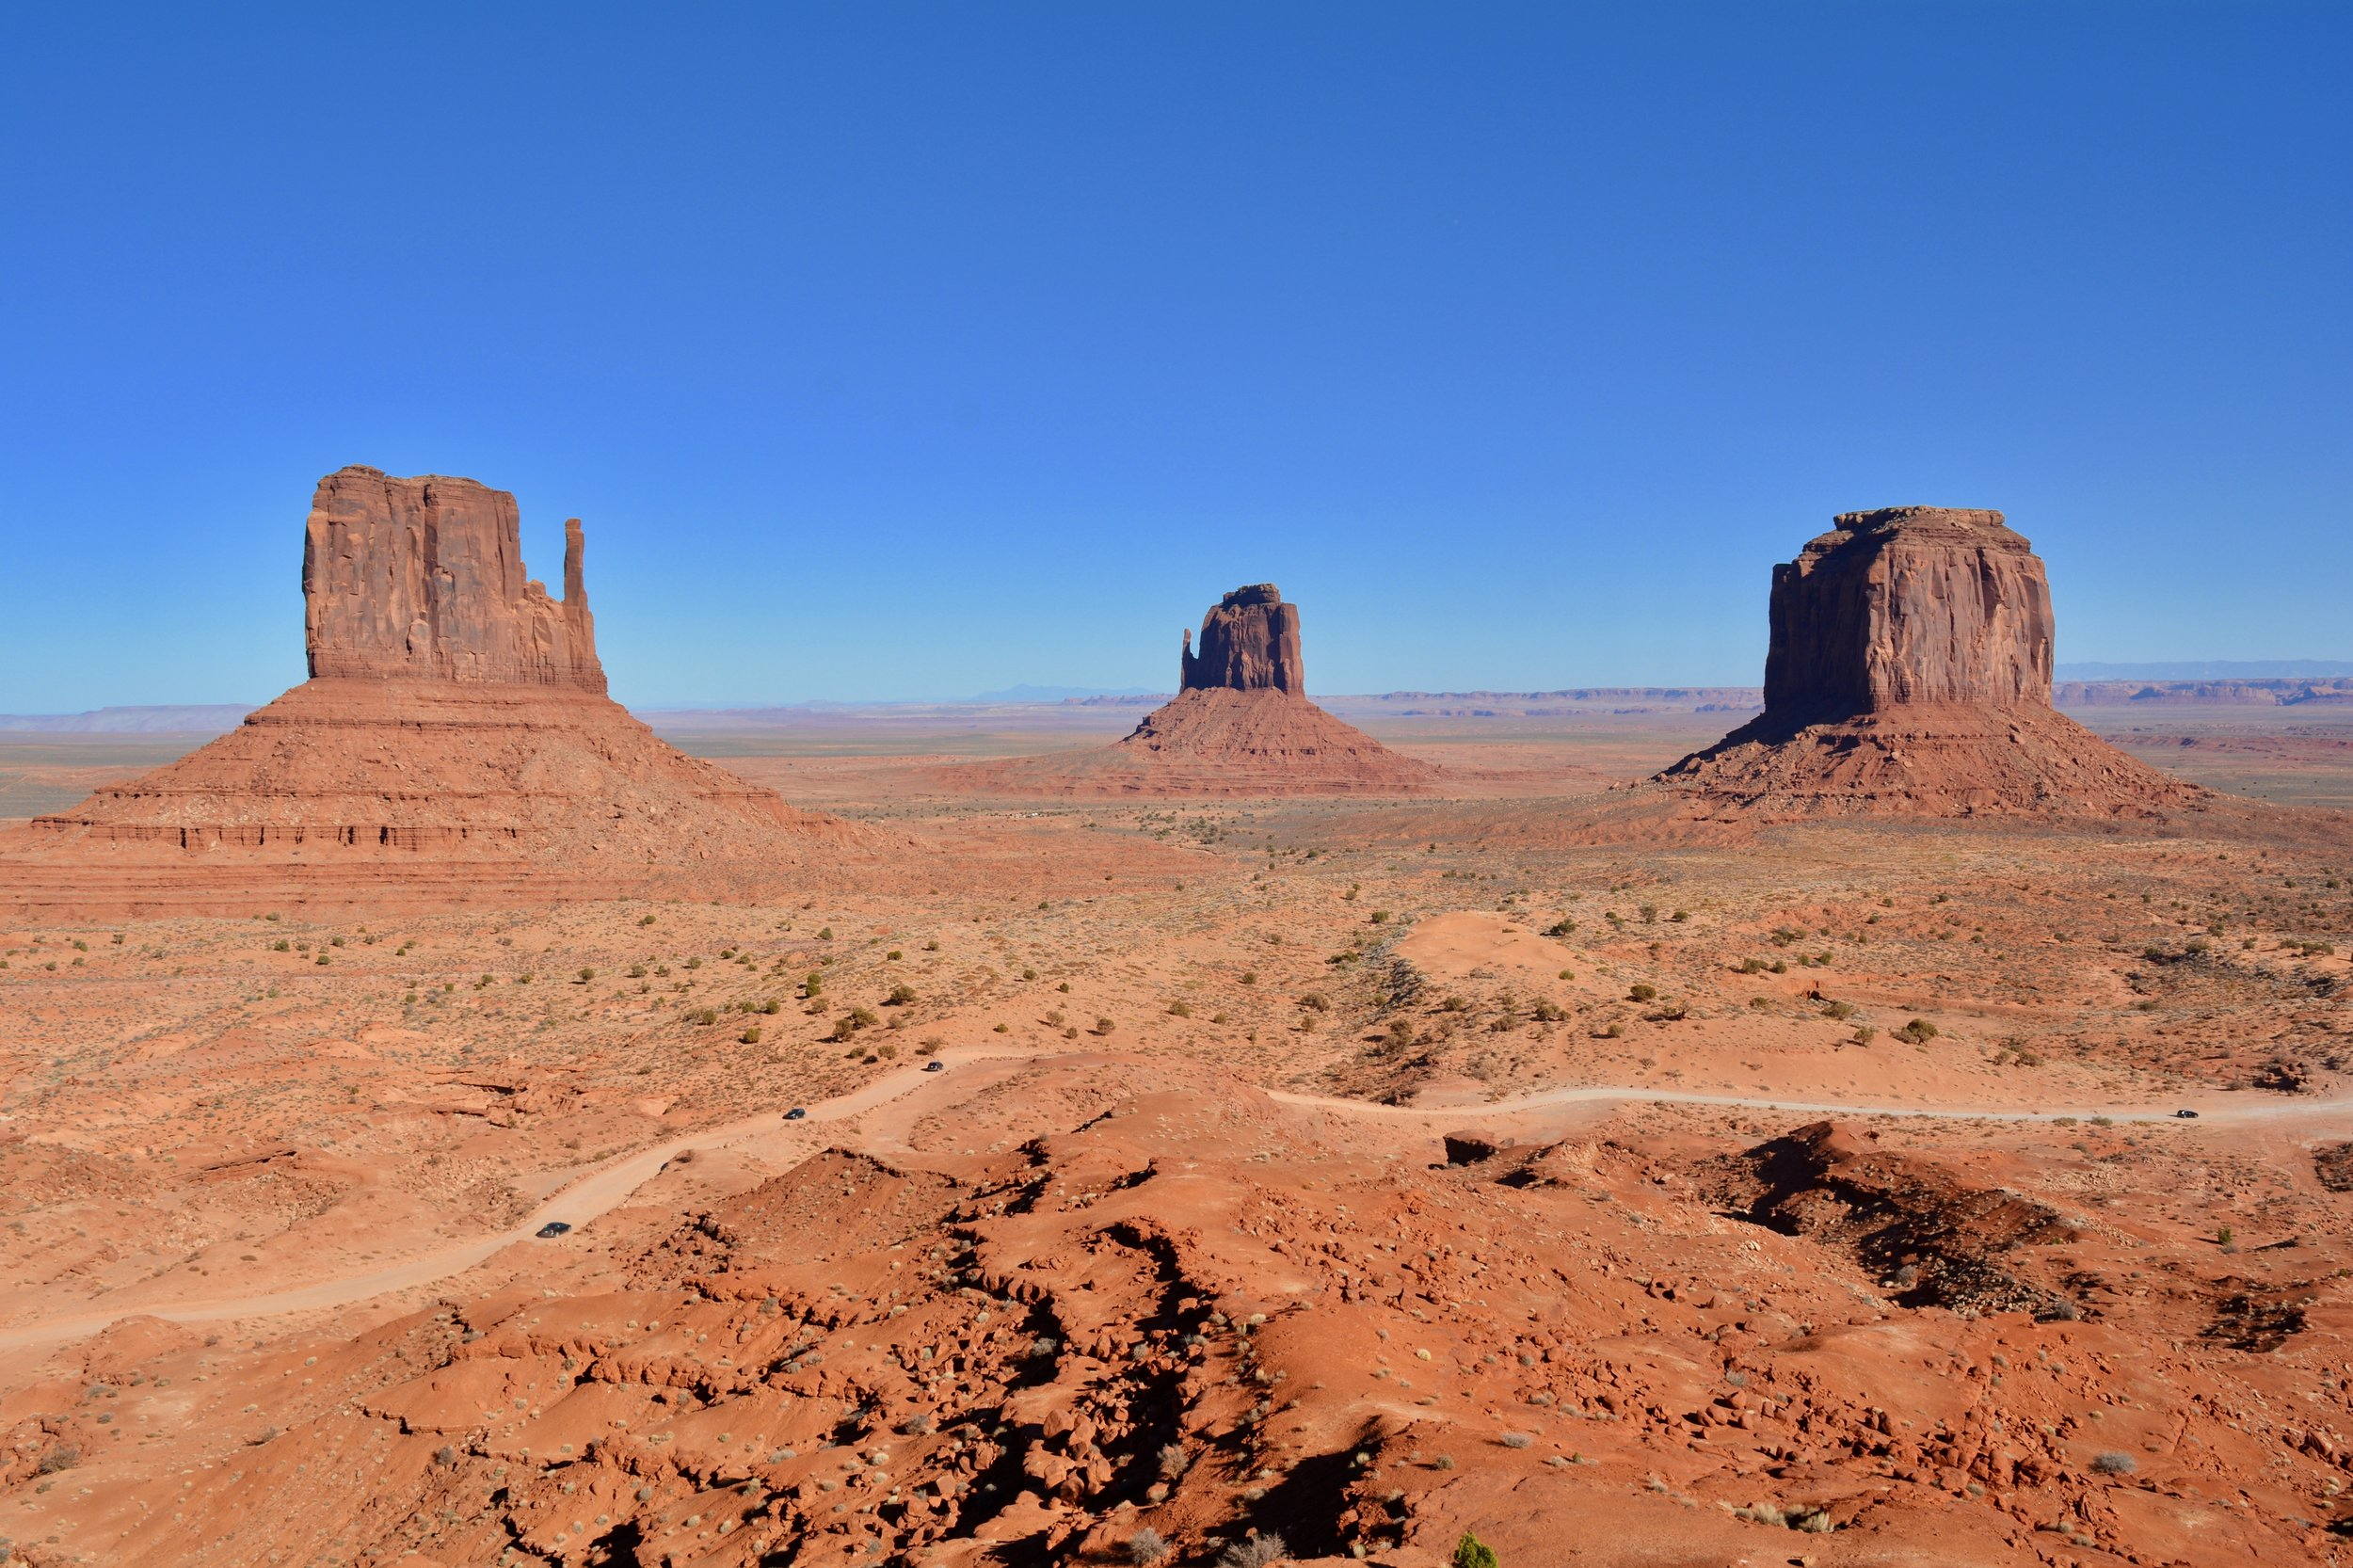 The iconic scenery at Monument Valley